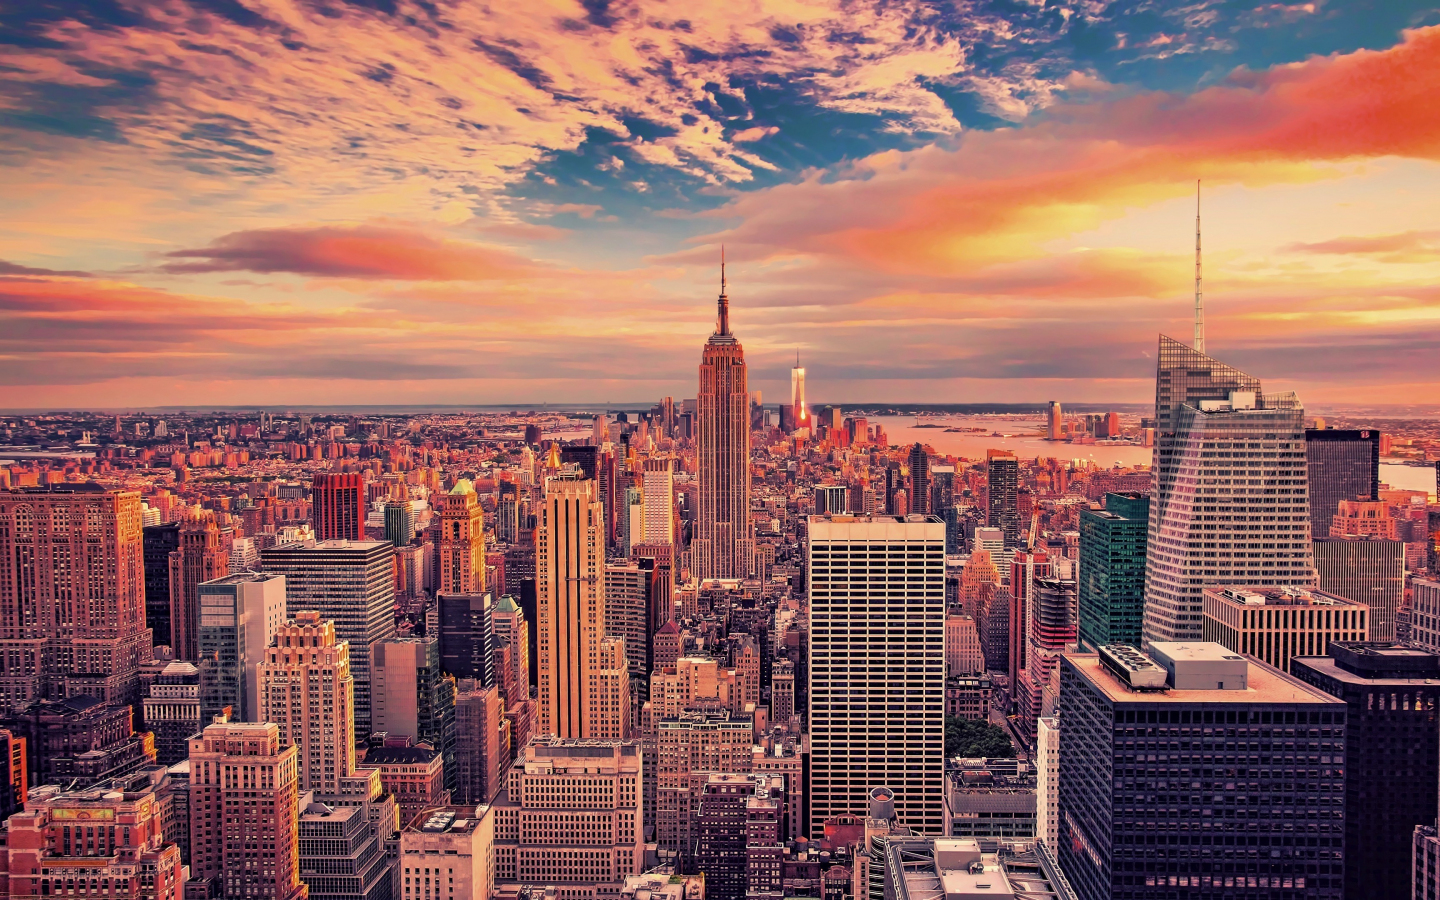 1440x900 wallpaper Empire state building, buildings, skyscrapers, new york city, sunset, 4k